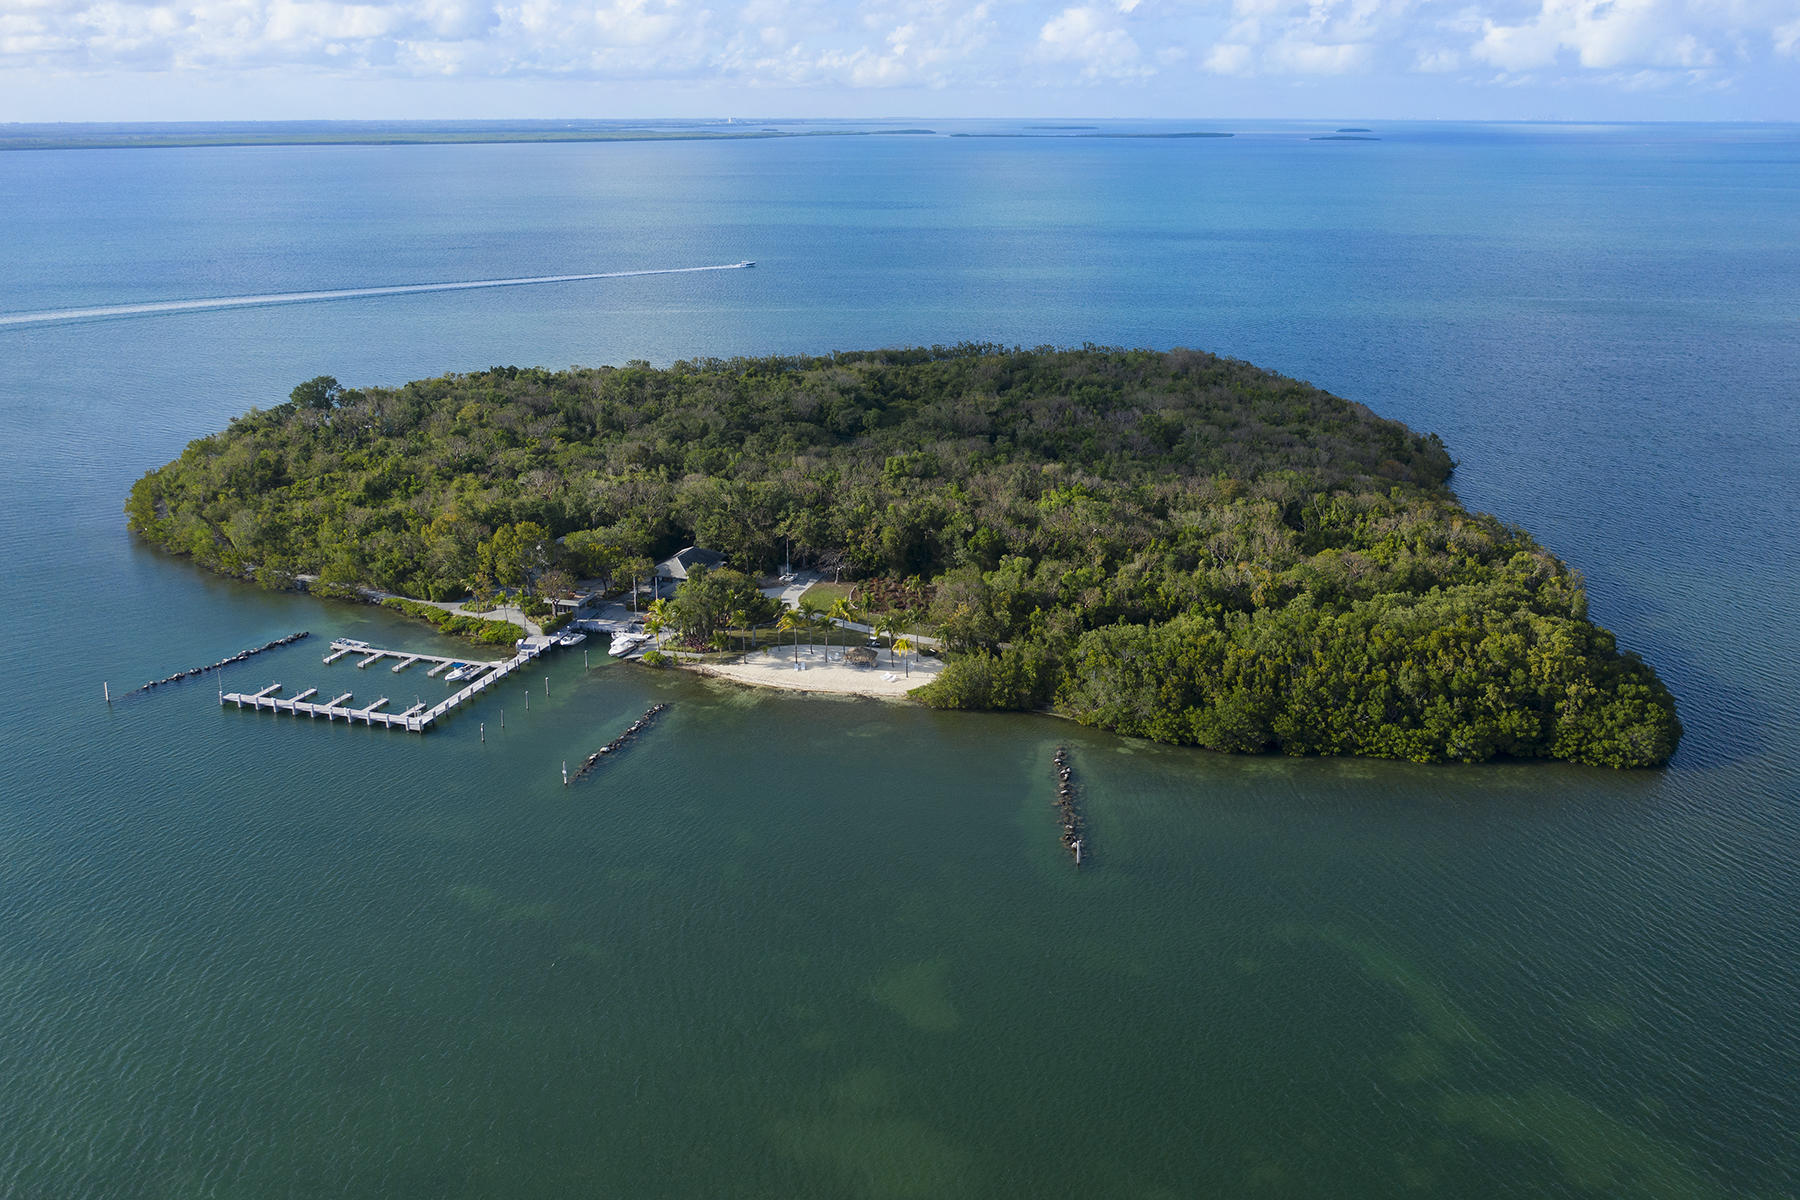 Private Islands for Sale at 10 Cannon Point, Key Largo, FL 10 Cannon Point Key Largo, Florida 33037 United States